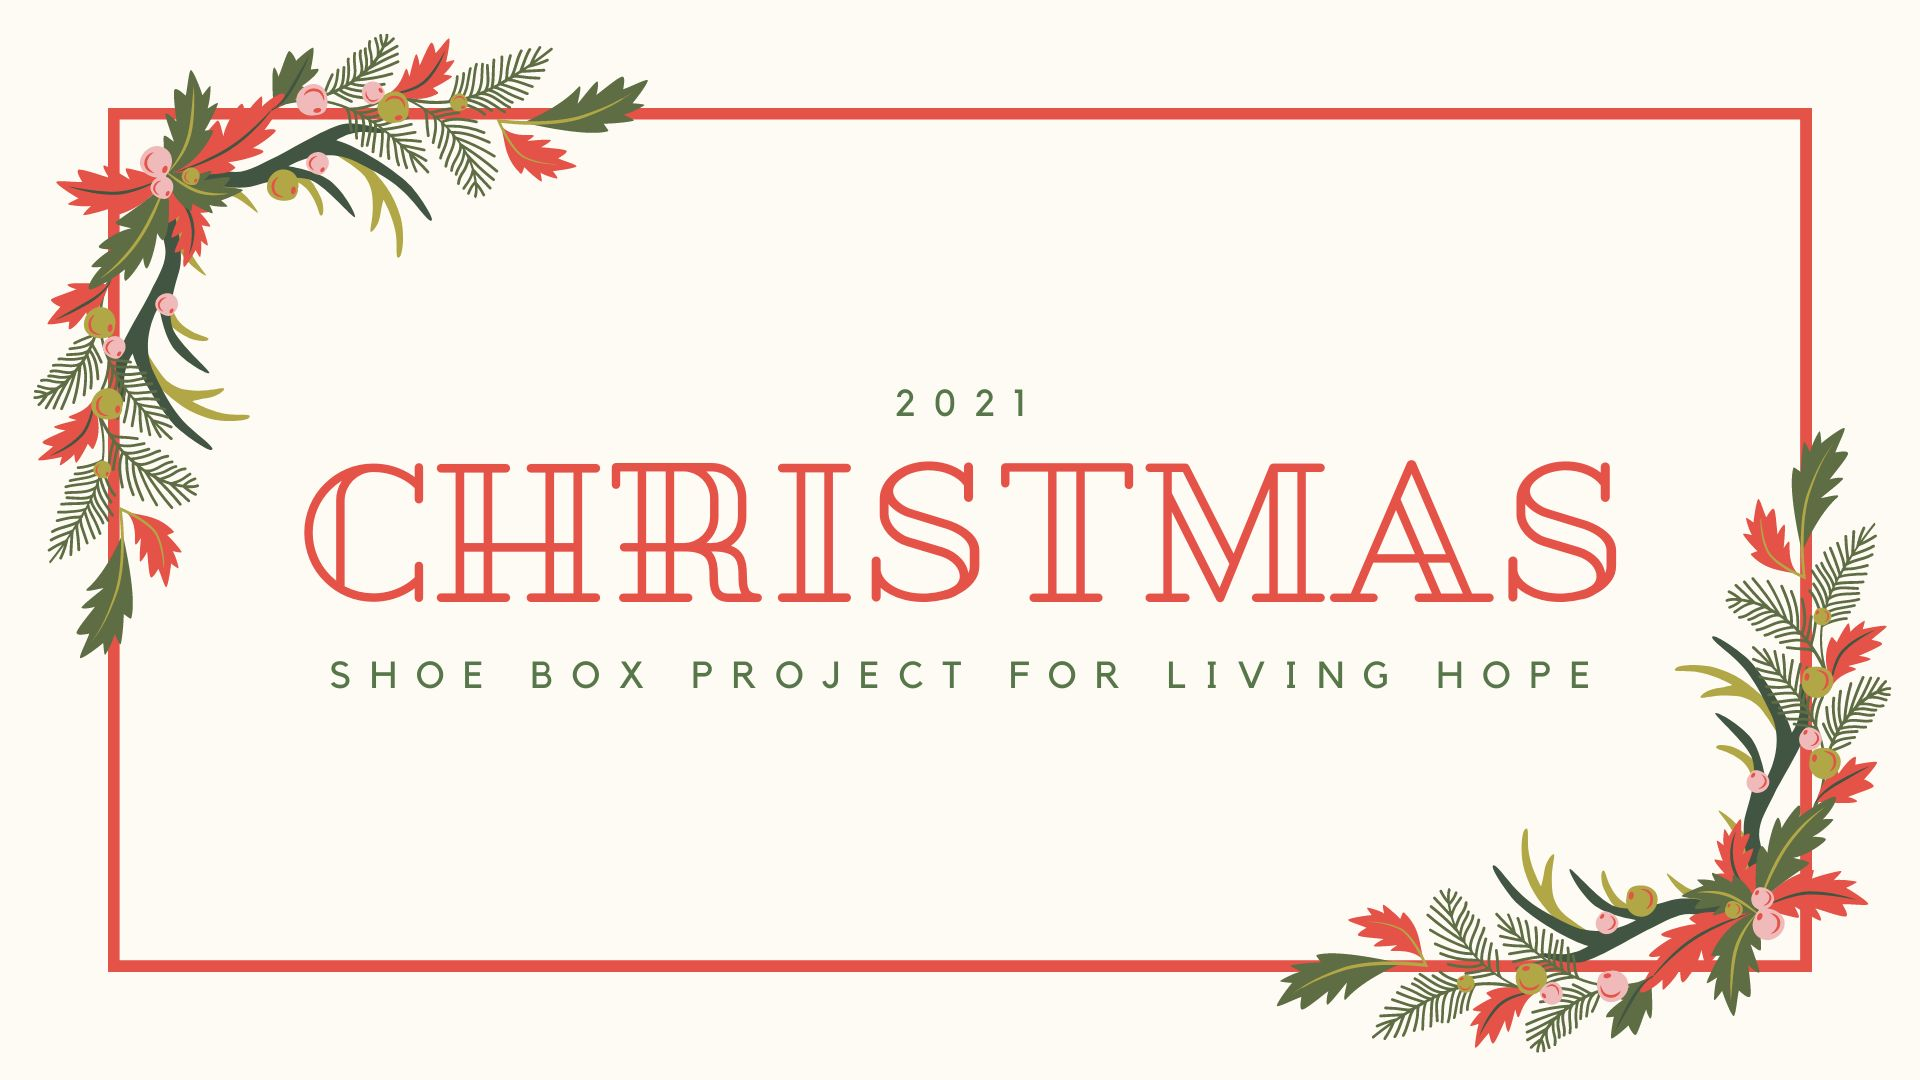 Shoe box project for living hope